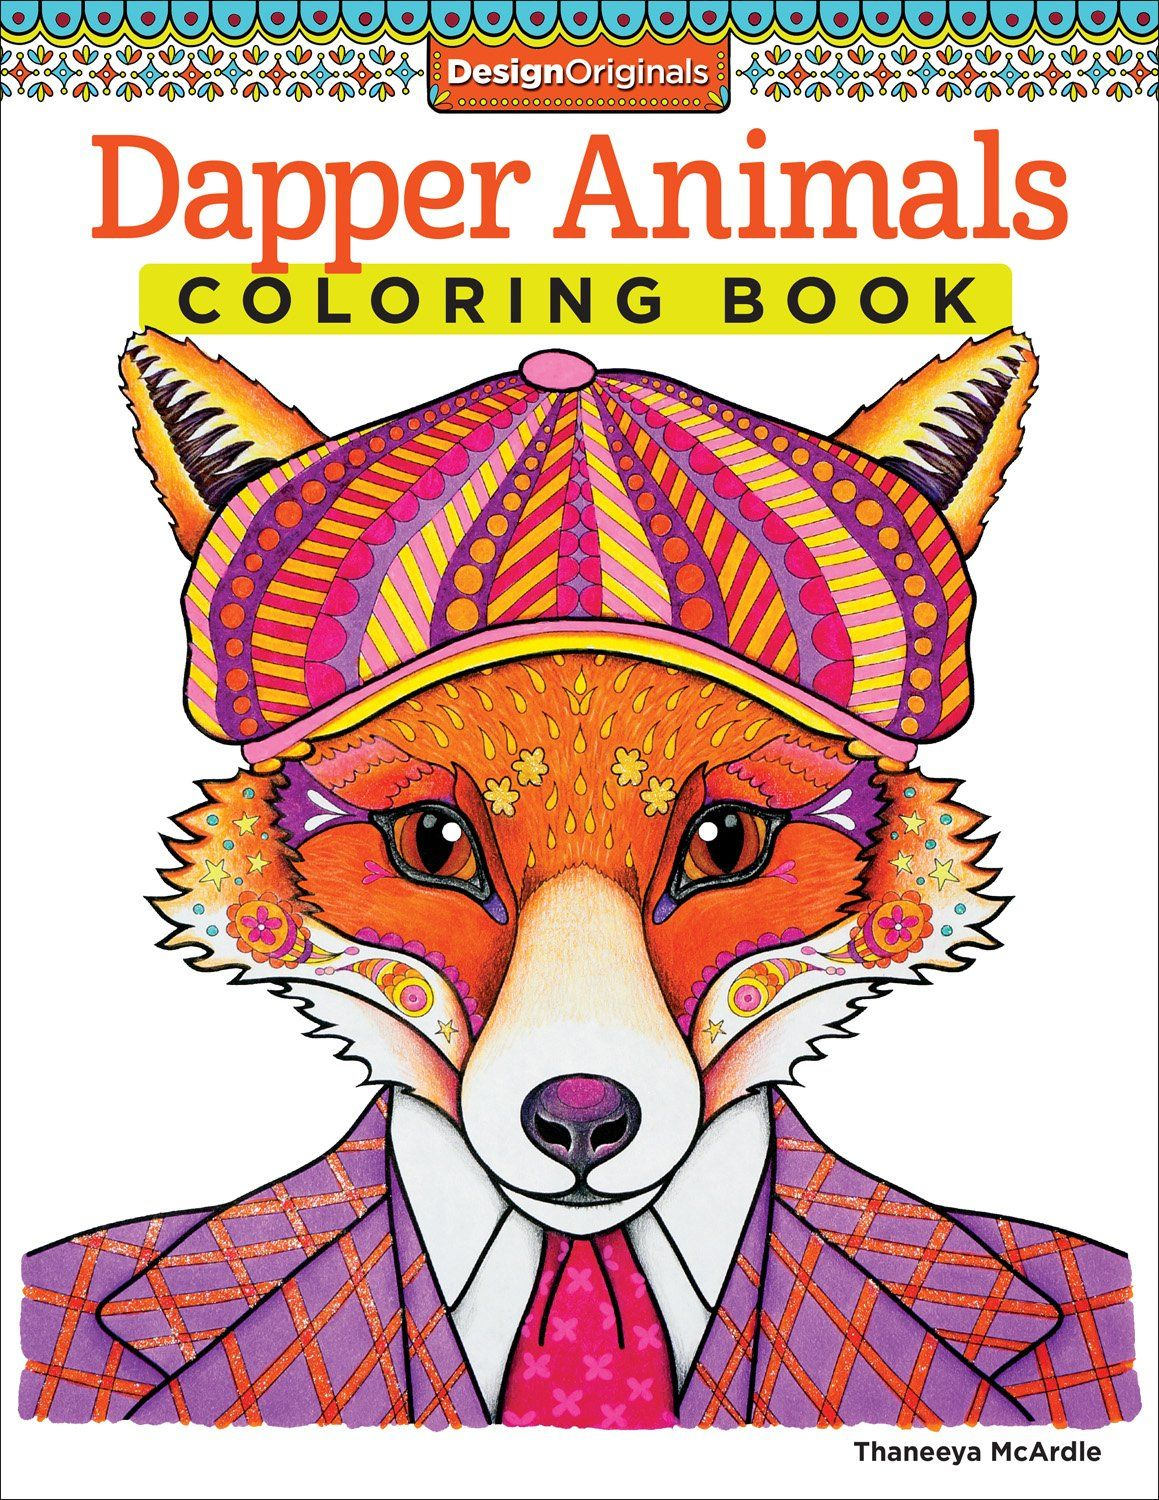 Christmas Is Thisclose Yall So What Are You Supposed To Do Hunter Of All Gifts Unique How About A Cool Coloring Book For Grown Ups